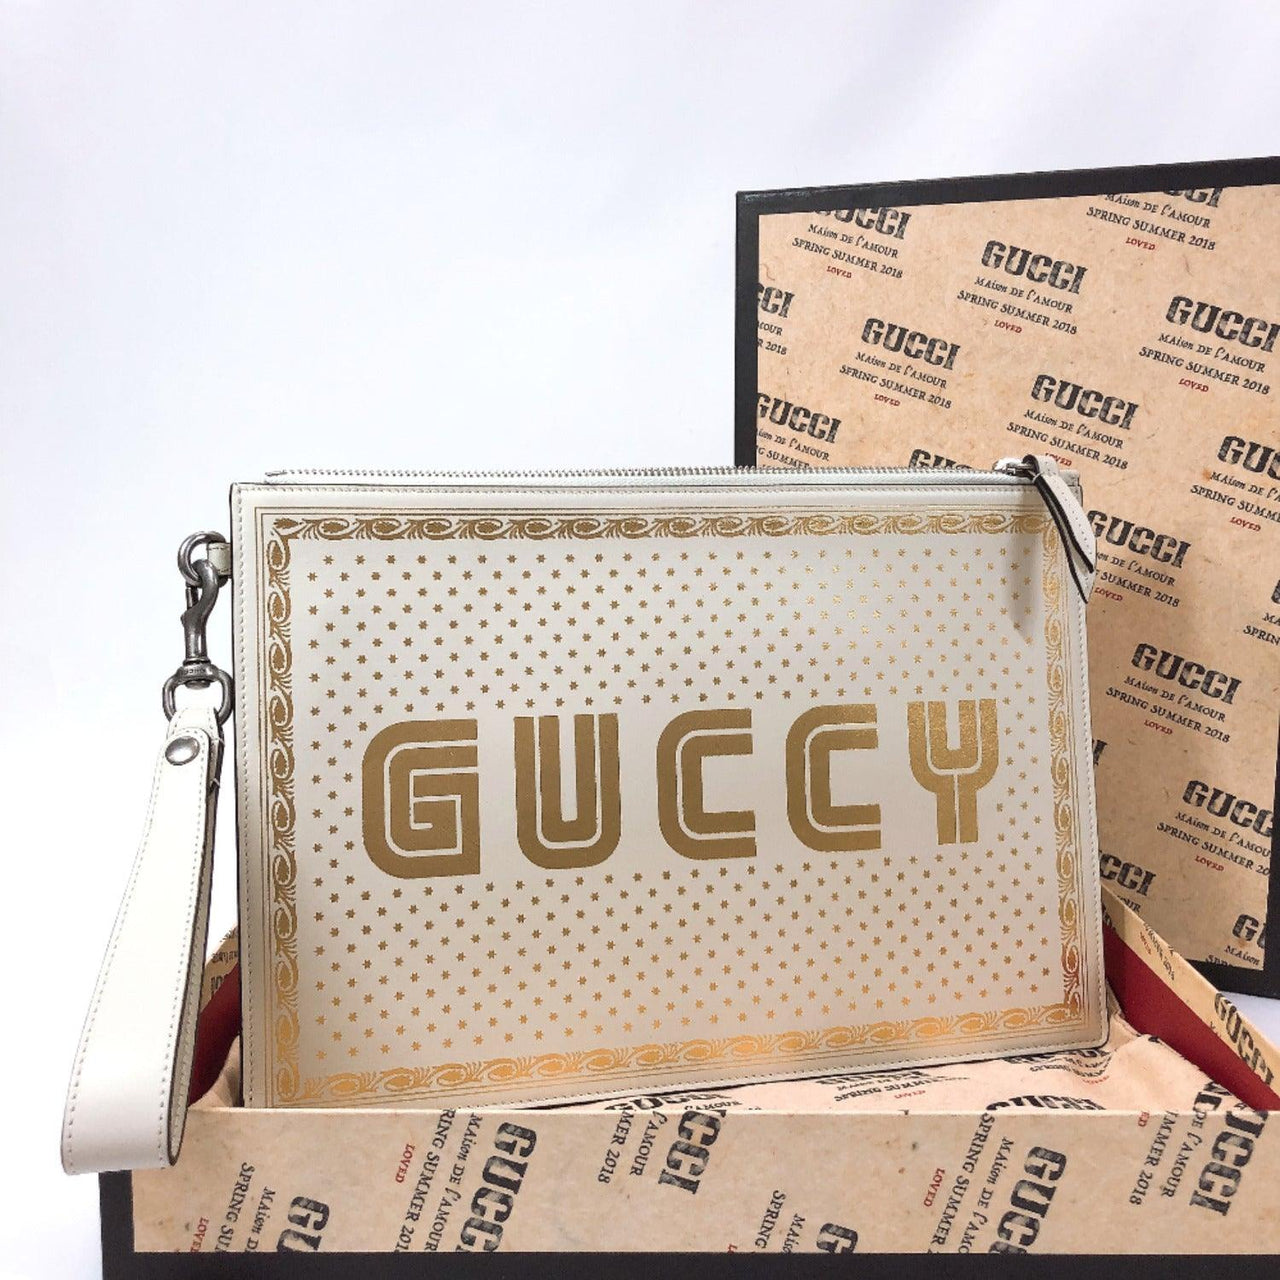 GUCCI Clutch bag 510489 SEGA GUCCY leather white gold unisex New